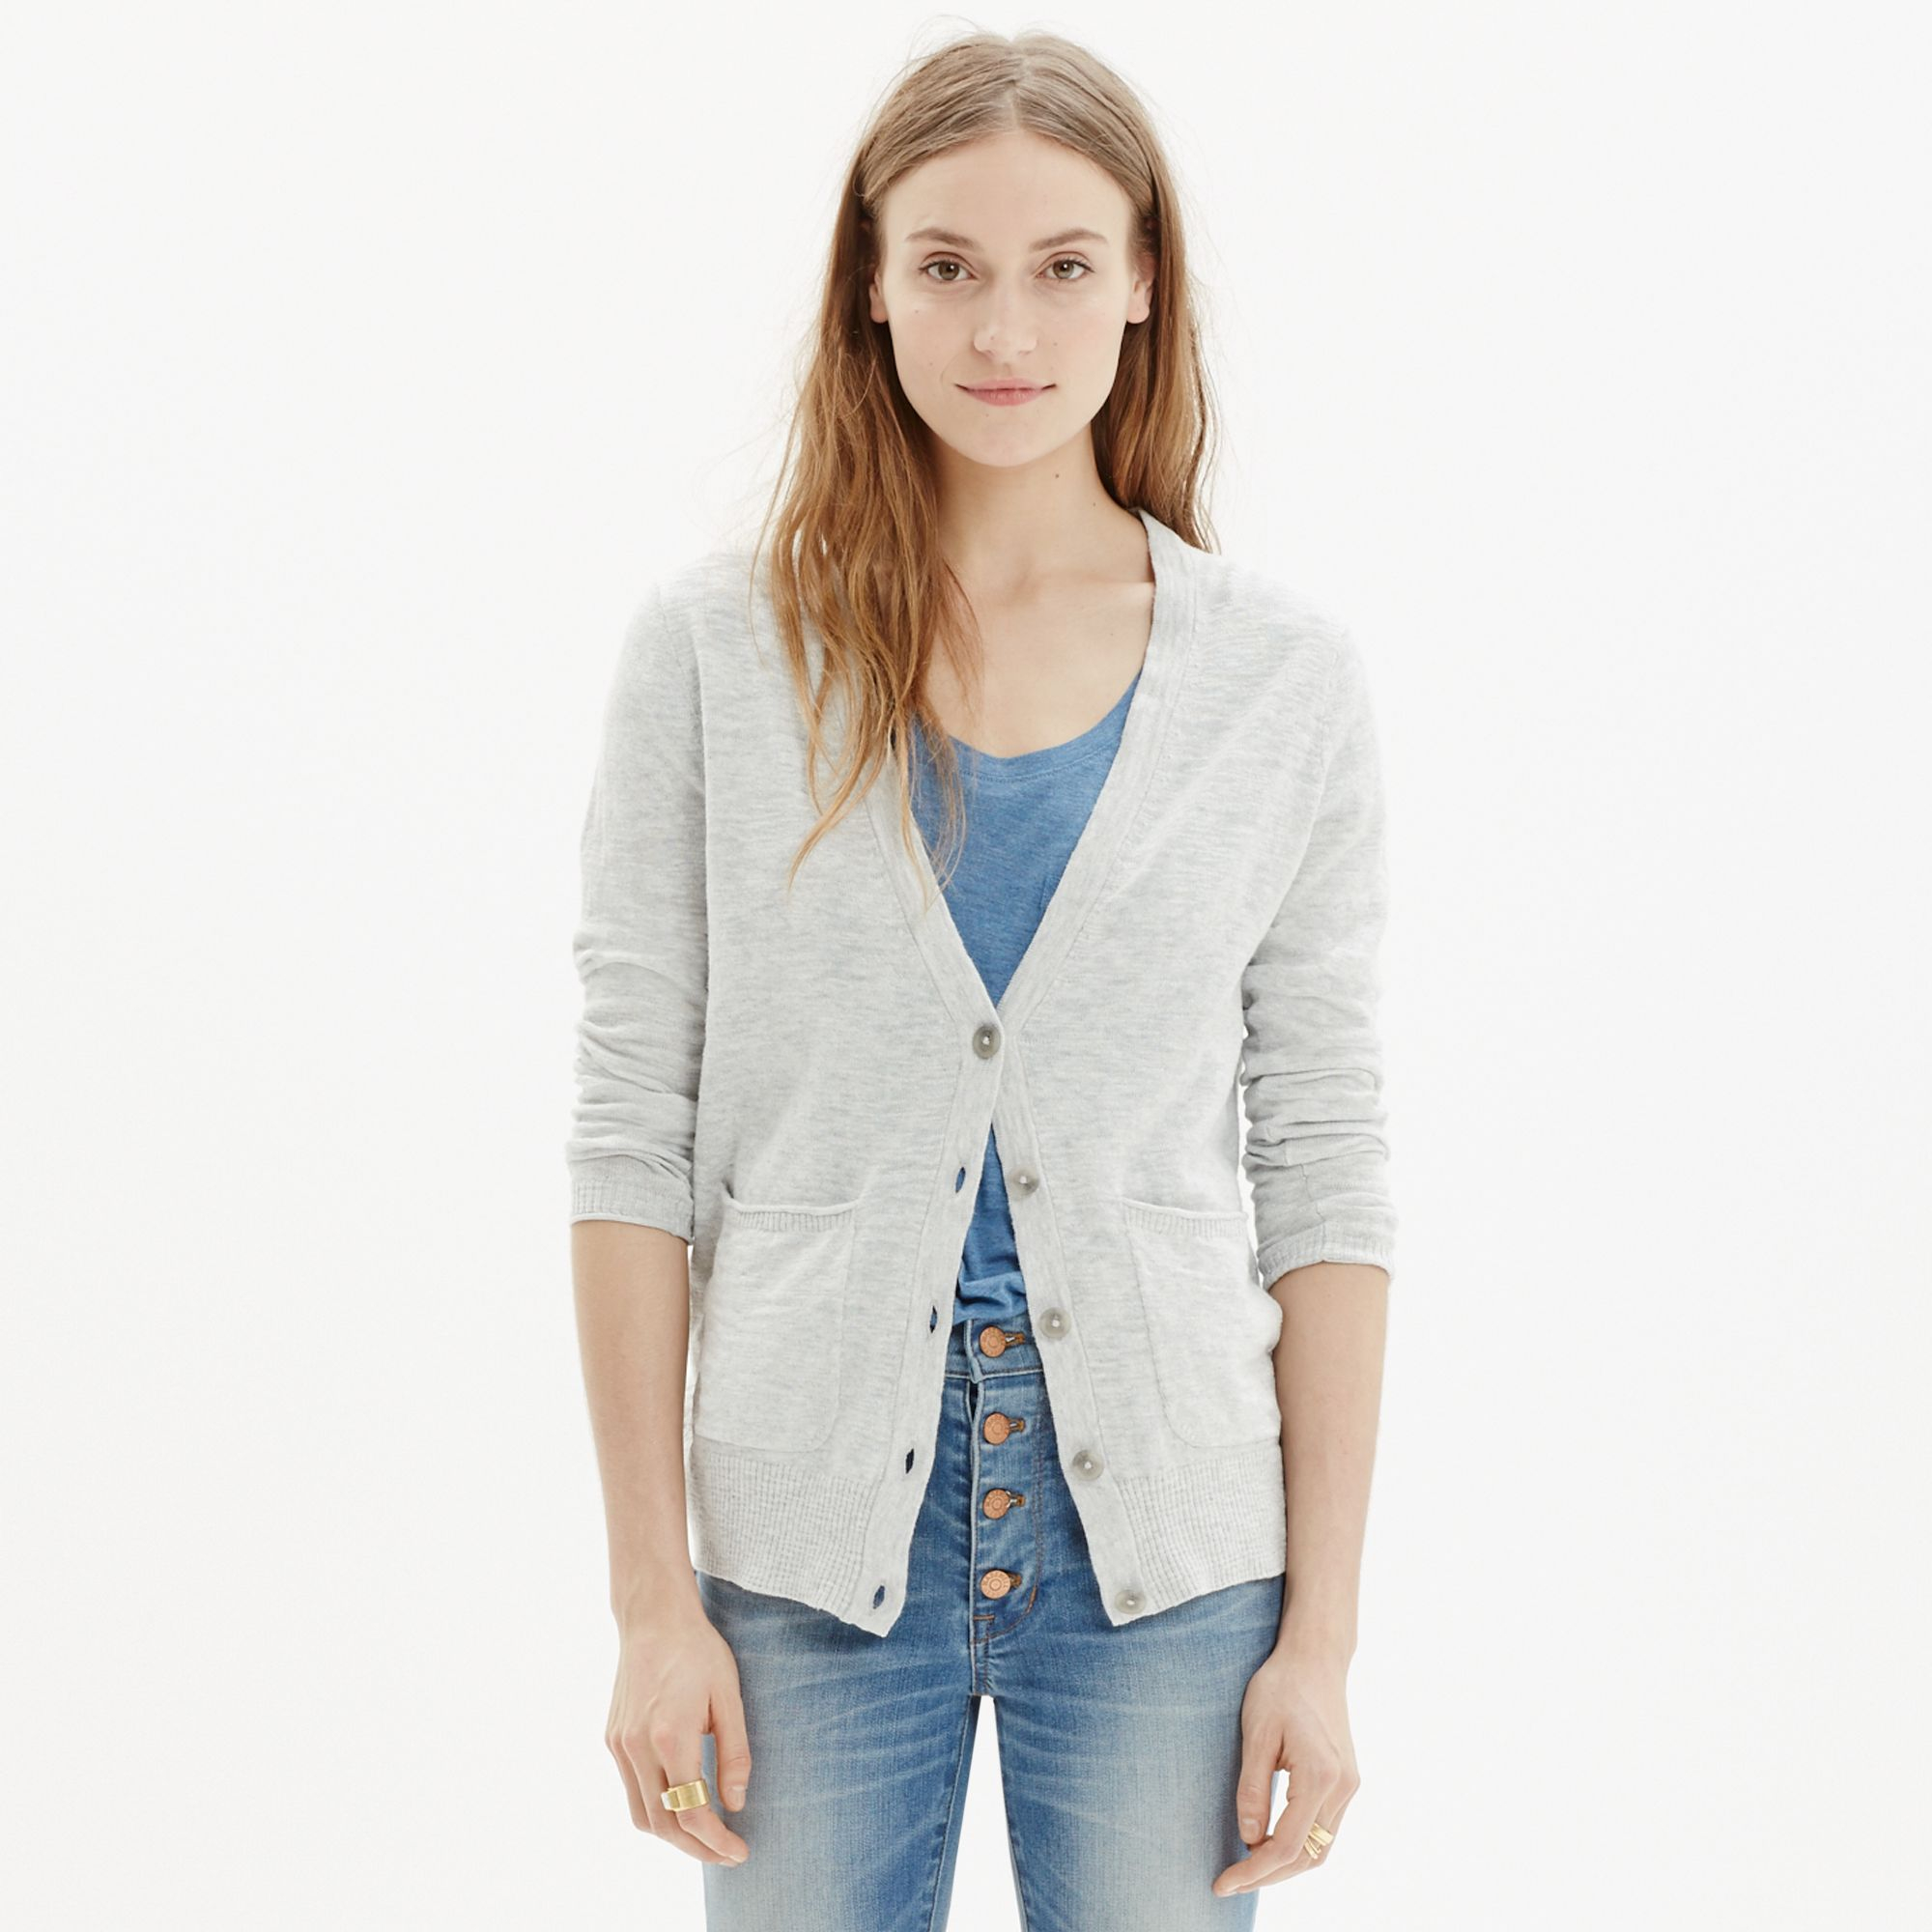 Madewell Graduate Cardigan Sweater in Gray | Lyst